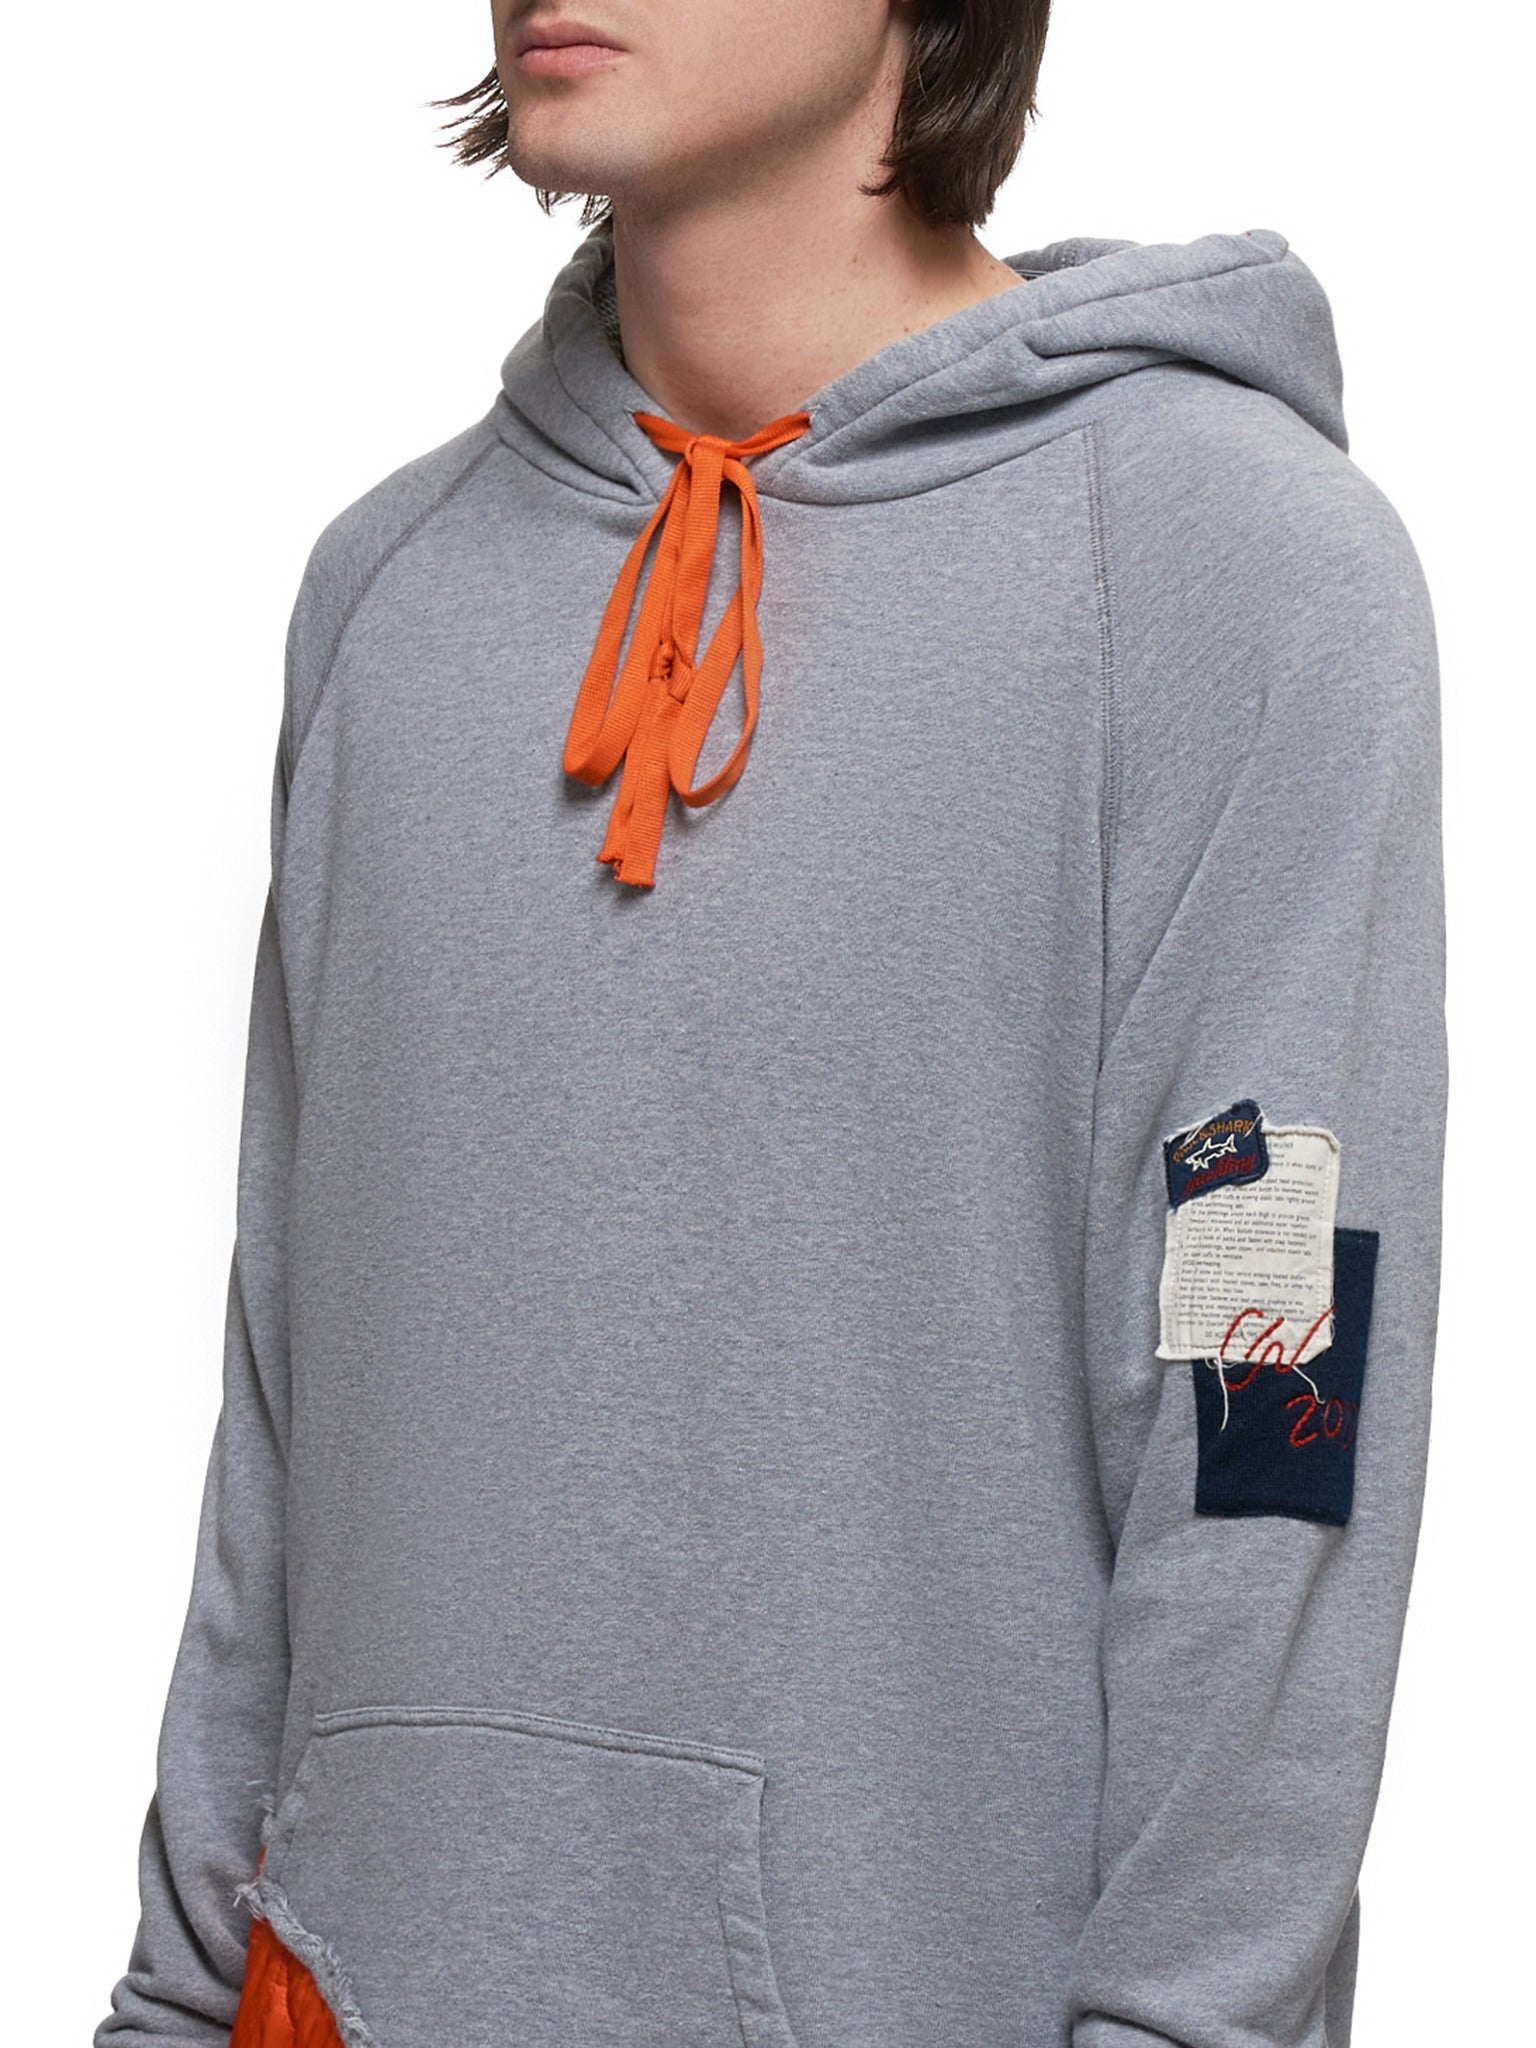 Paul & Shark by Greg Lauren Hoodie - Hlorenzo Detail 1